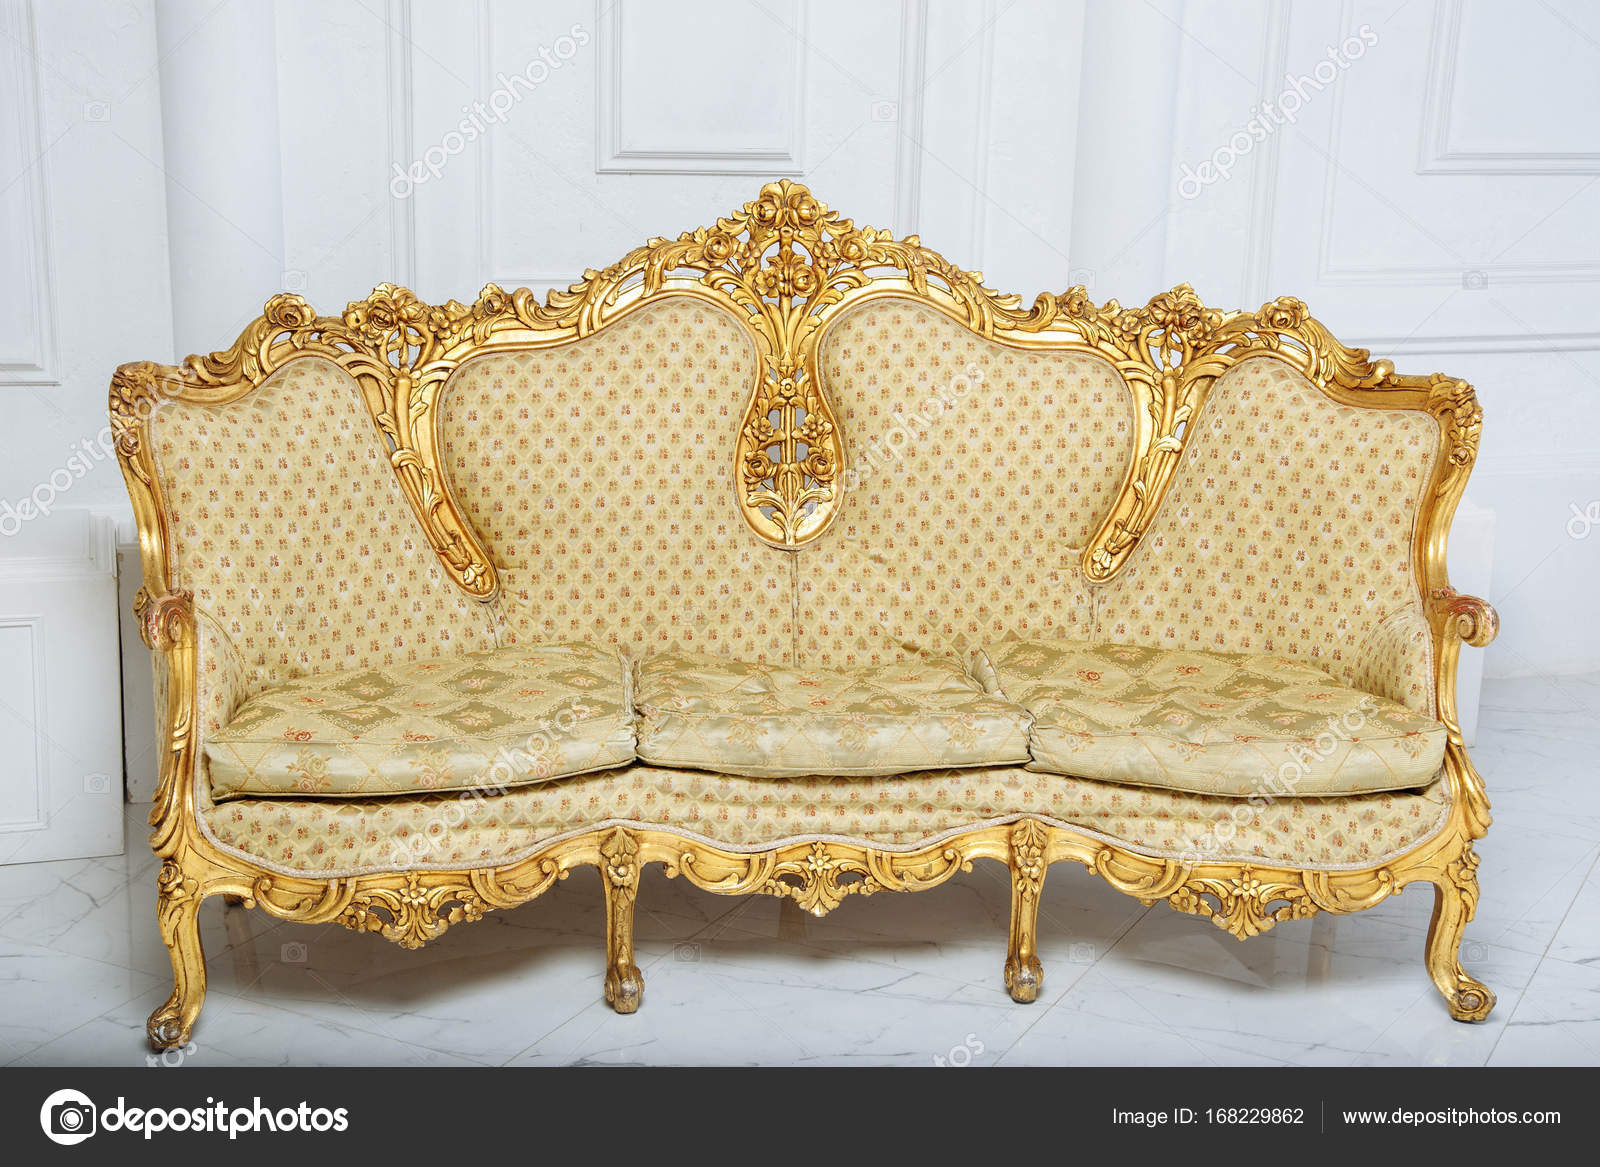 Luxurious Golden Sofa On A Background Of Old White Wall U2014 Stock Photo